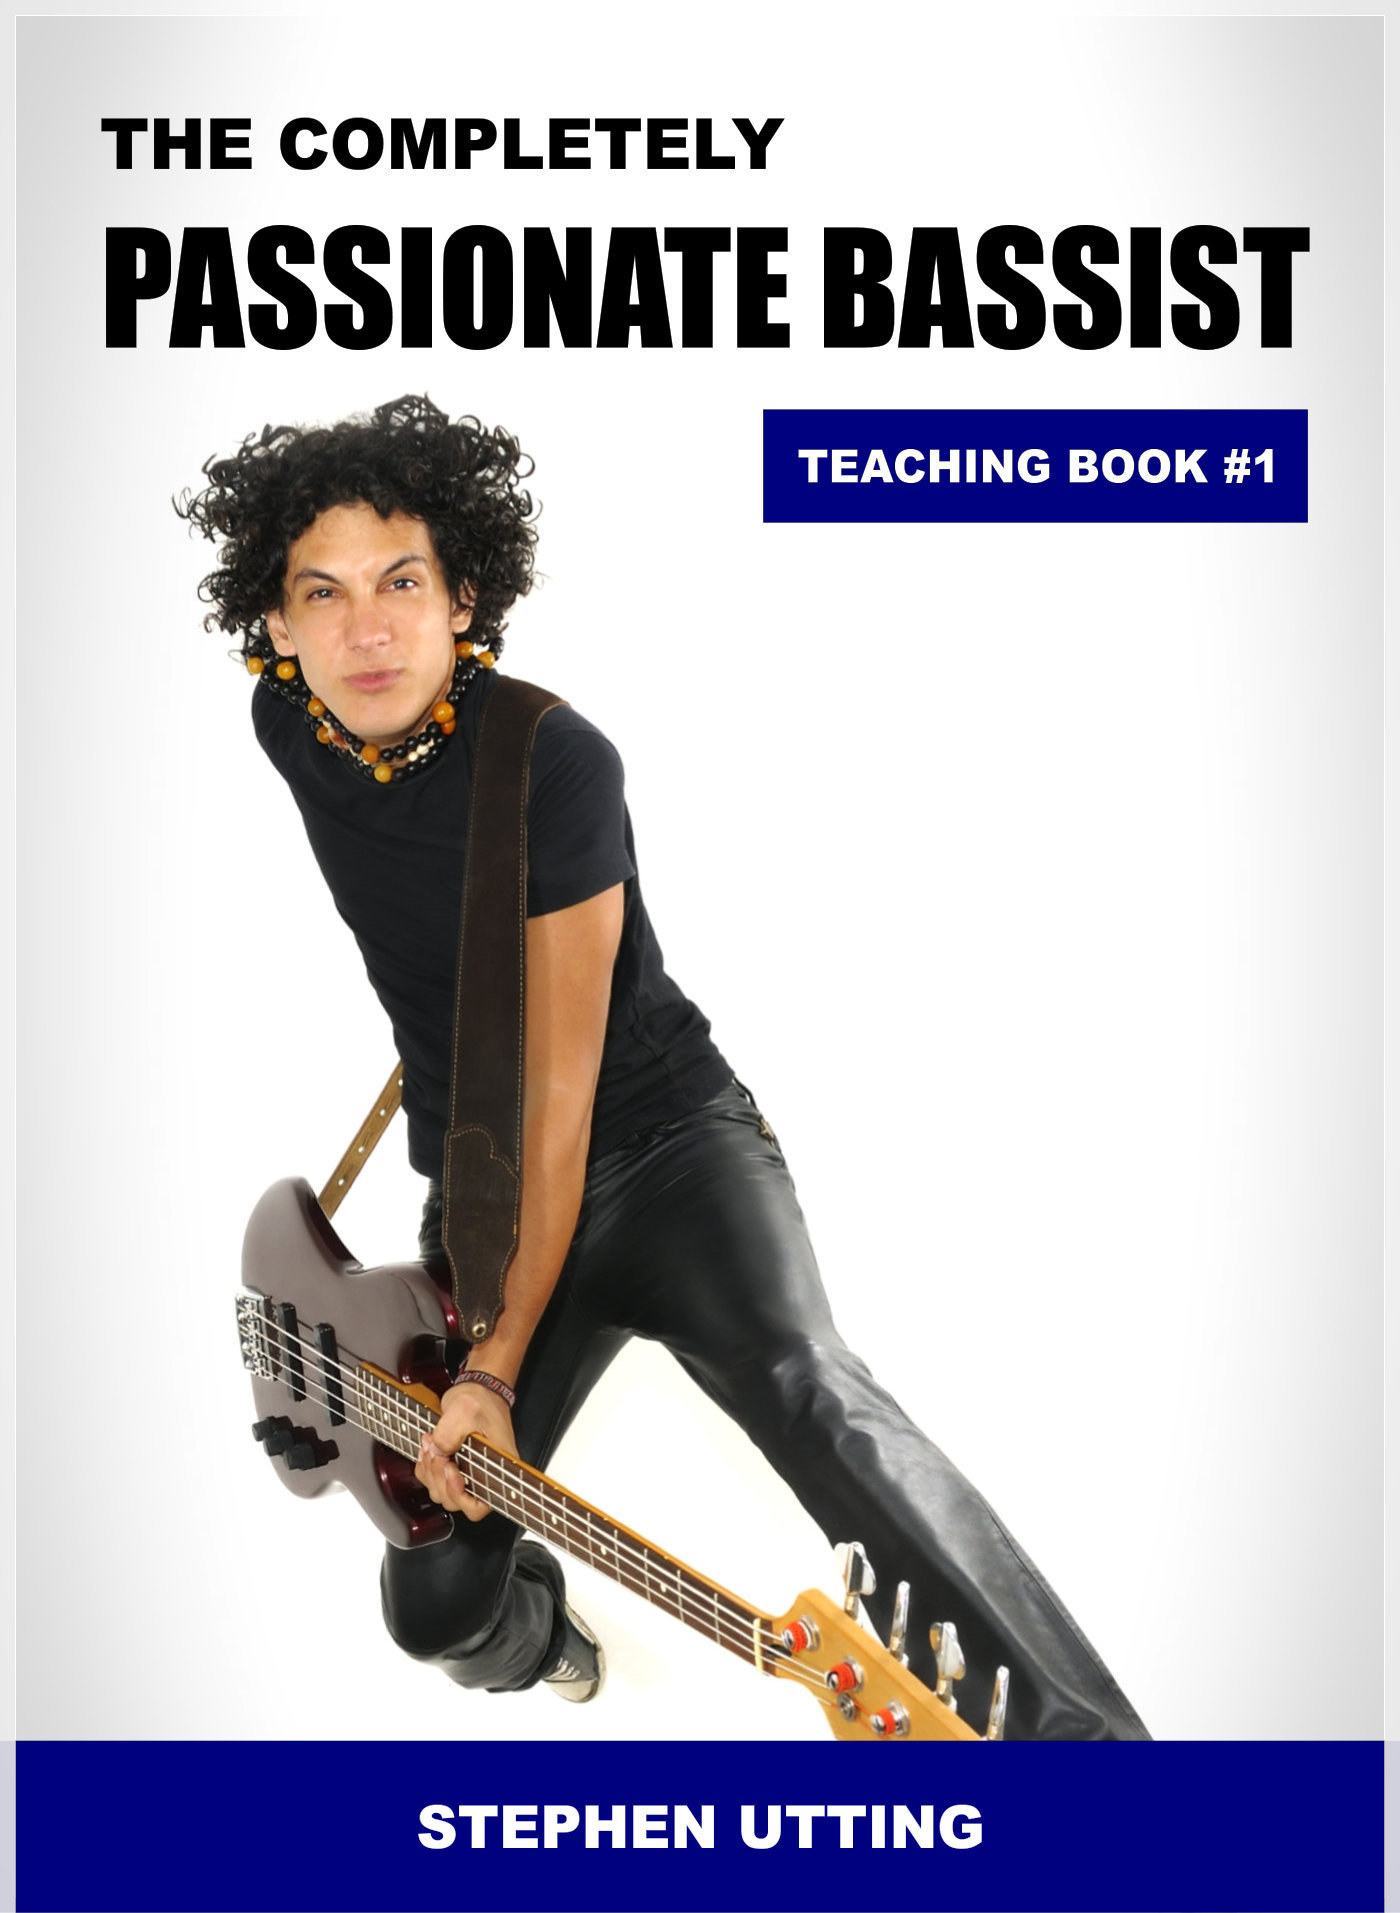 The Completely Passionate Bassist